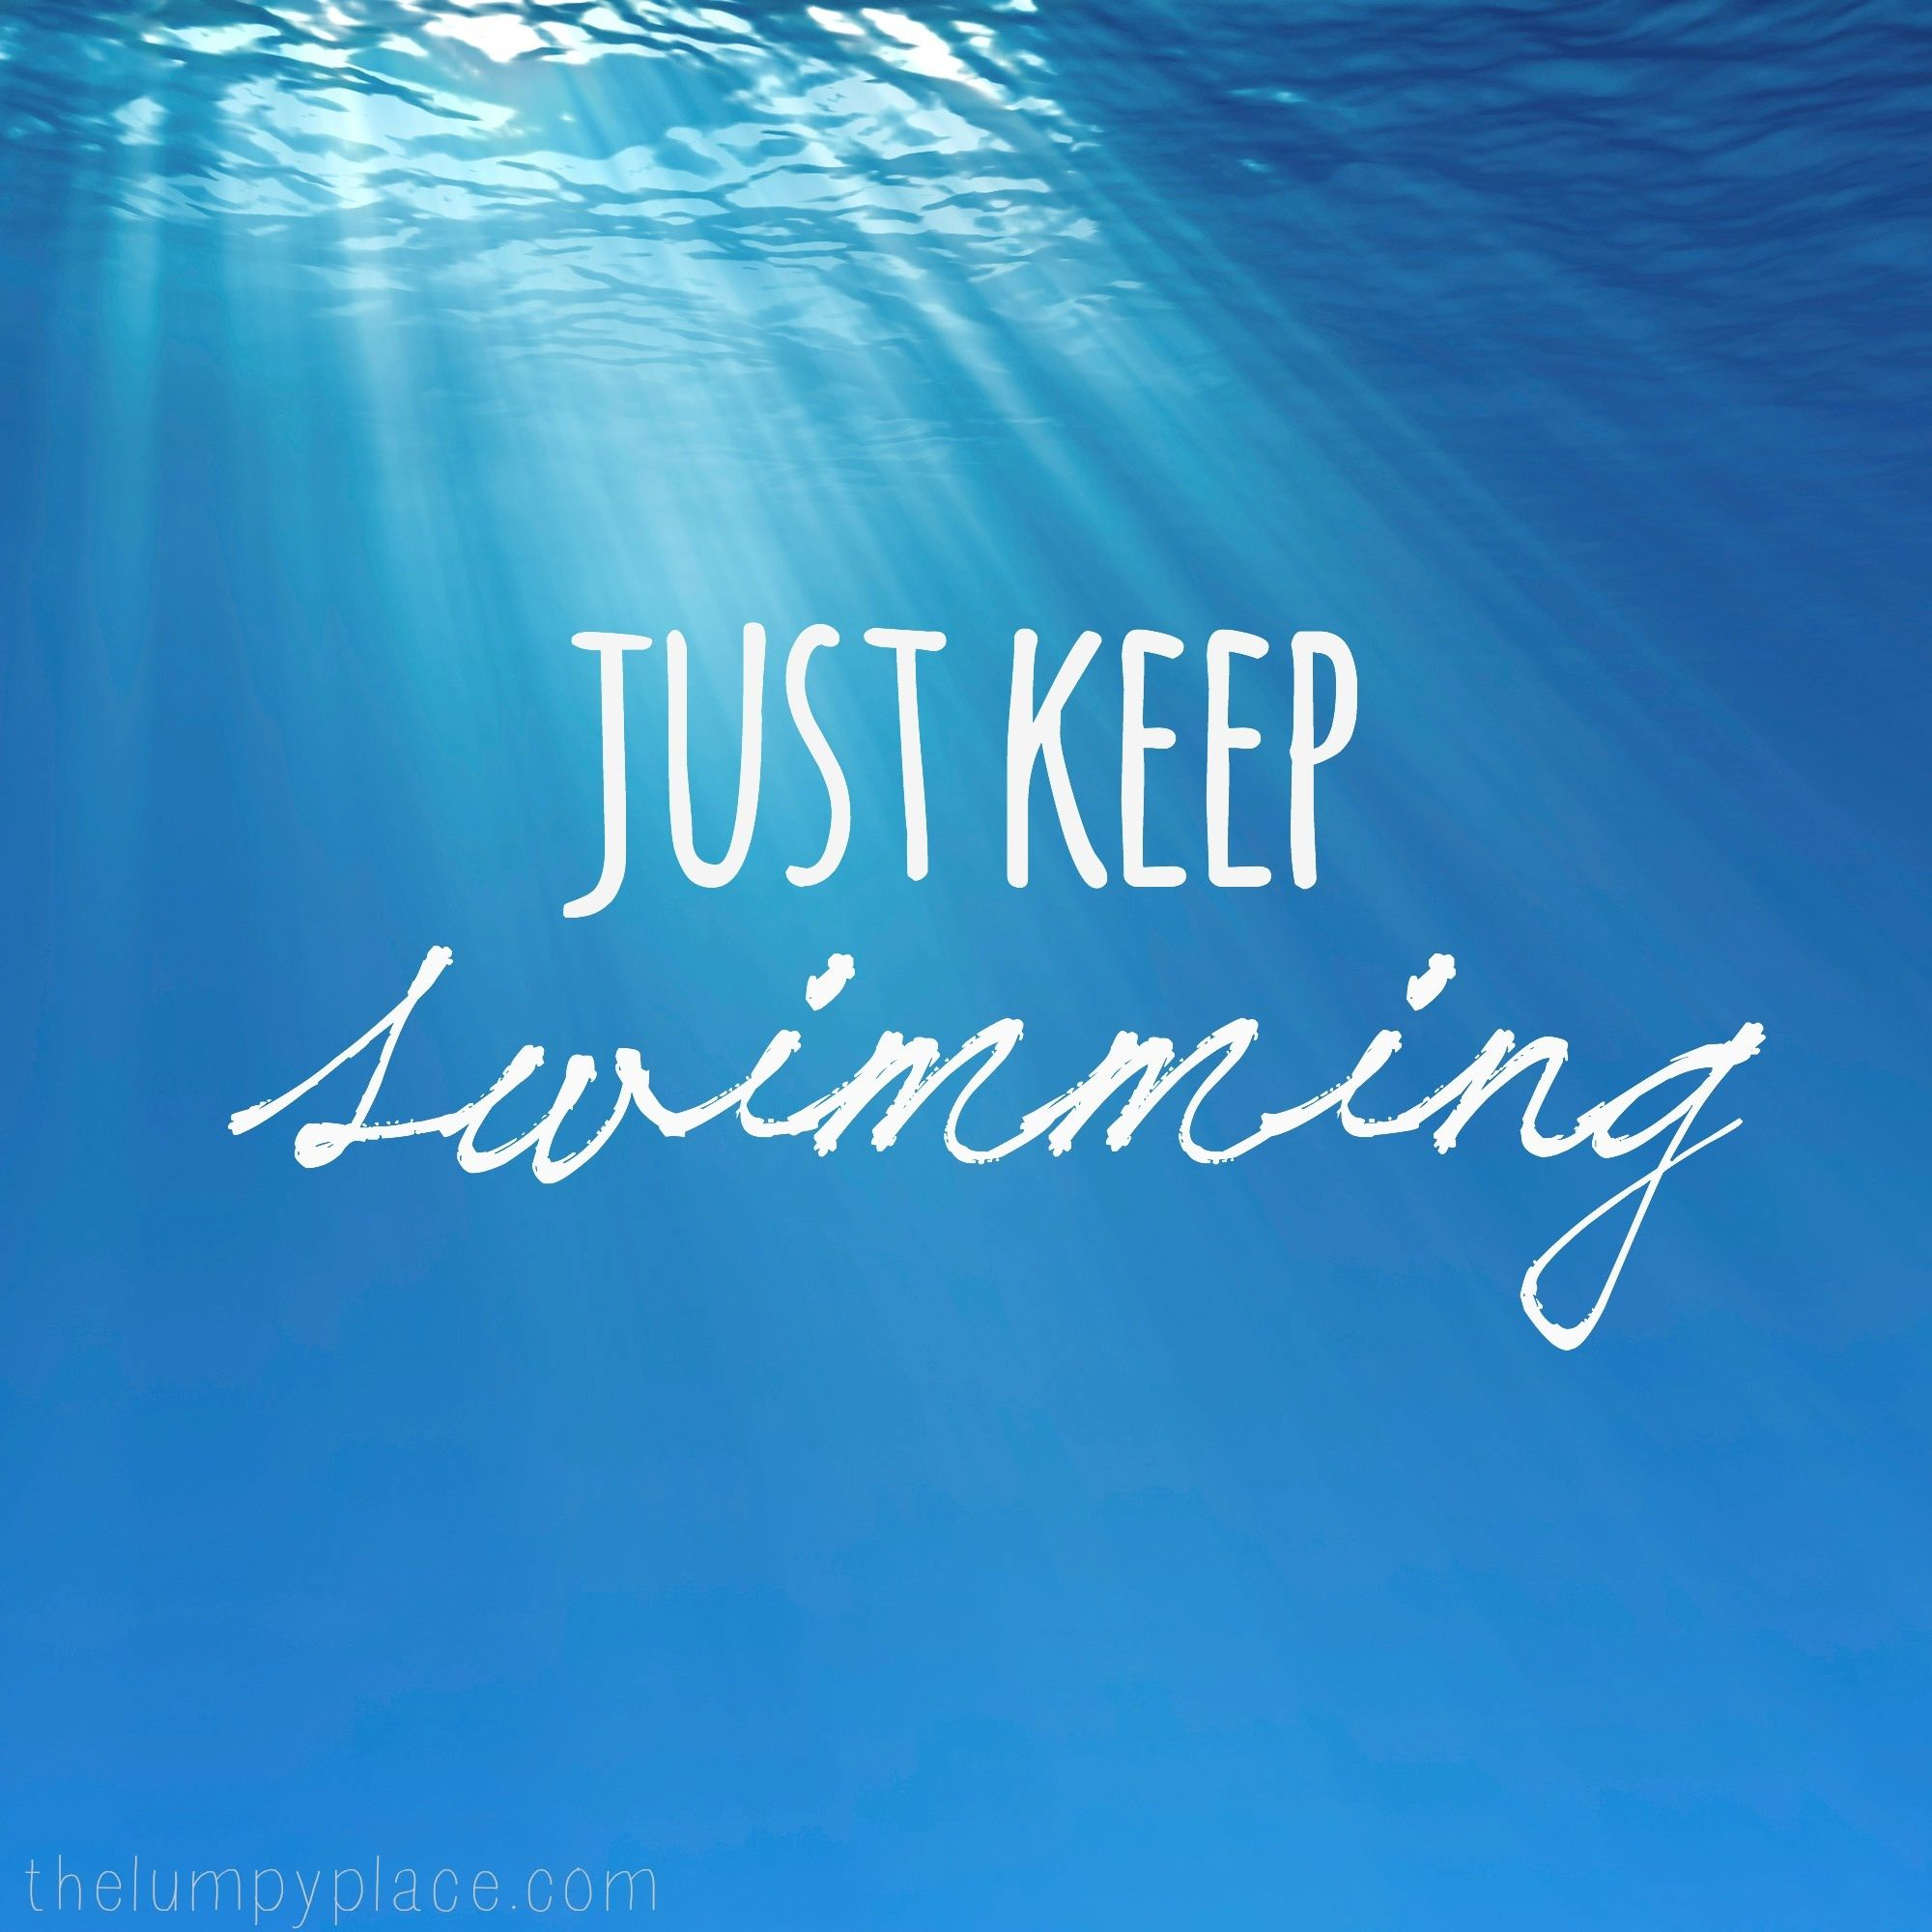 Just Keep Swimming Wallpaper